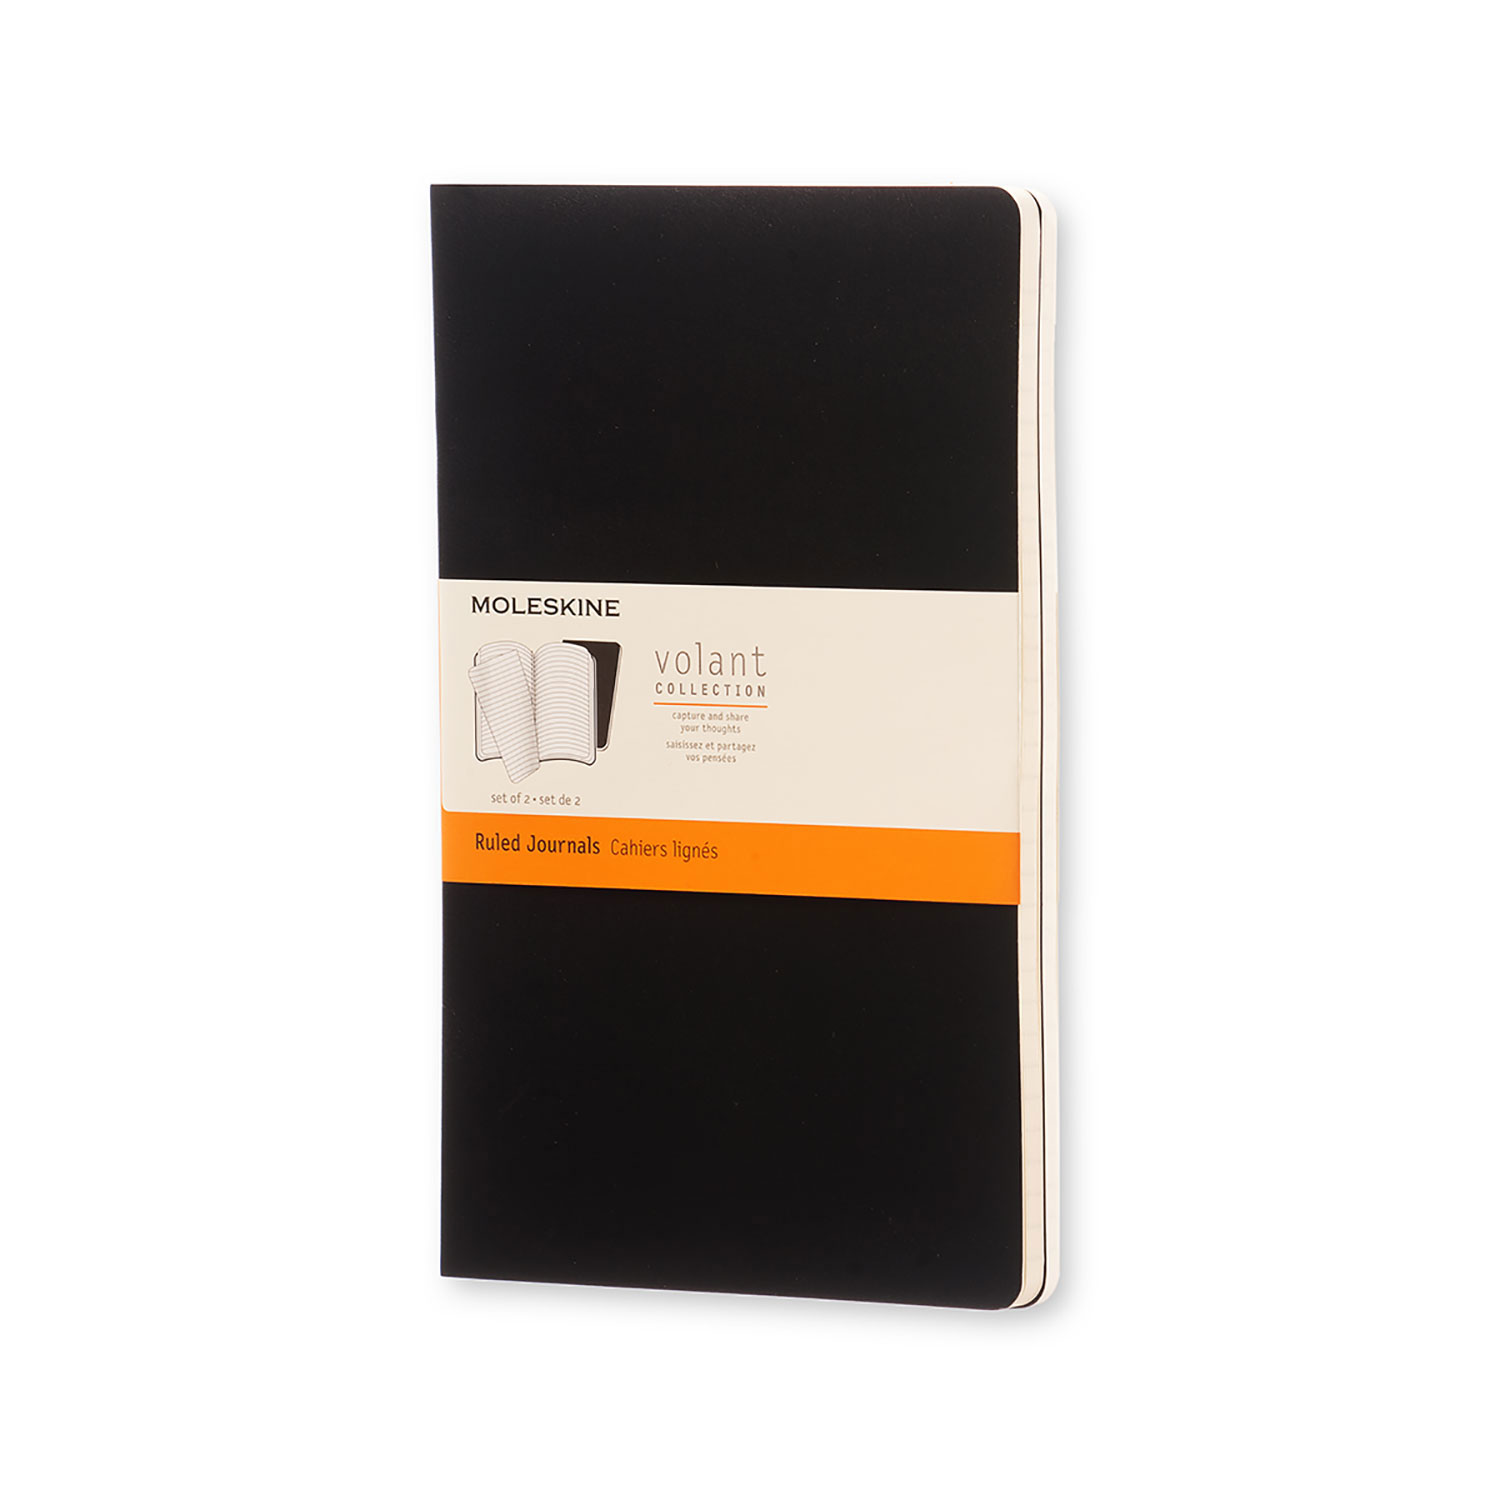 Branded Moleskine Notebooks - Volant